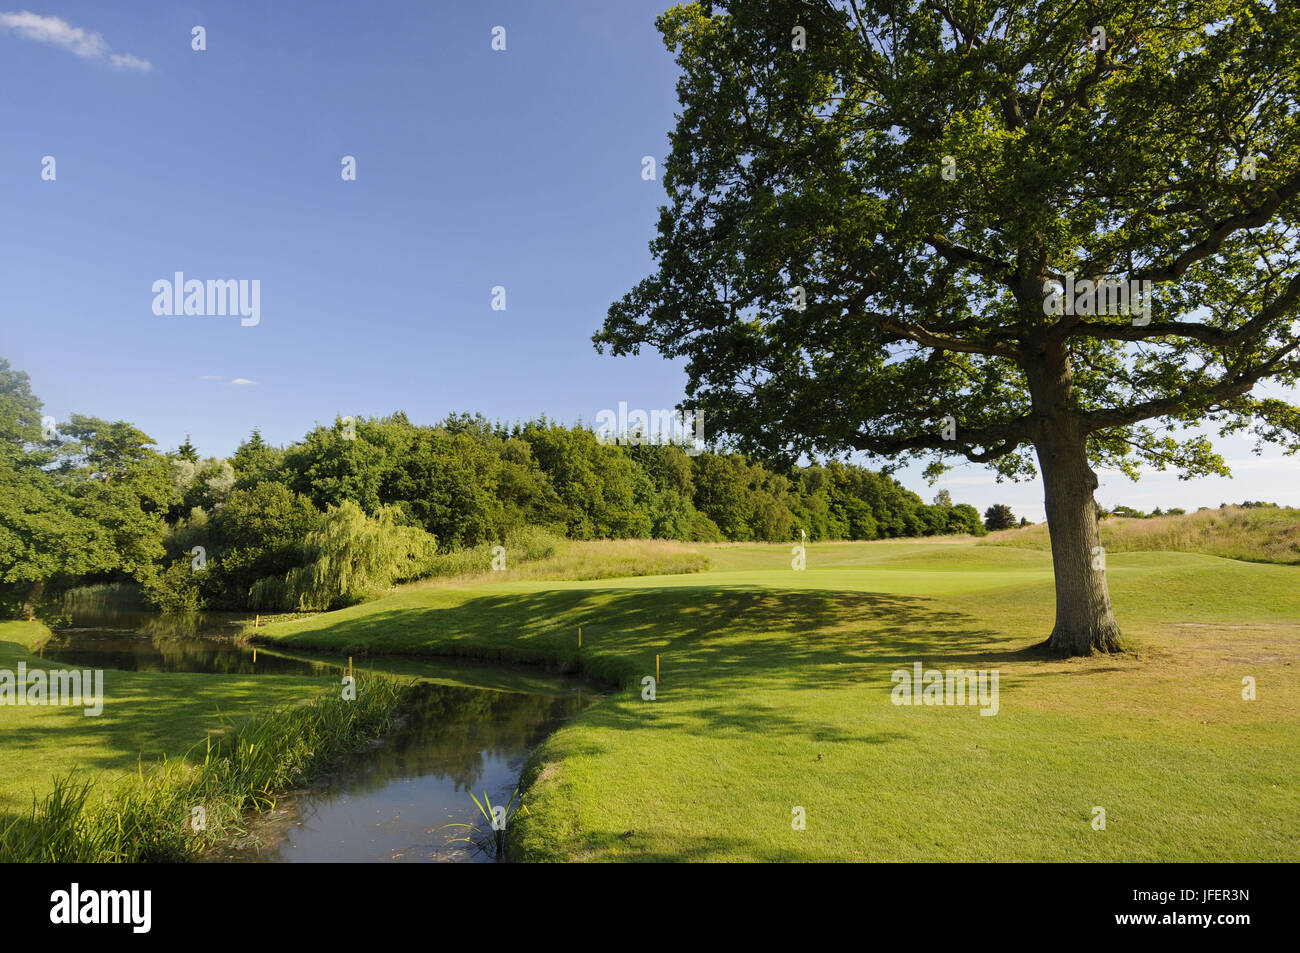 View of the Green on the 10th Hole on the East Course with a stream in front, East Sussex National East Sussex England - Stock Image